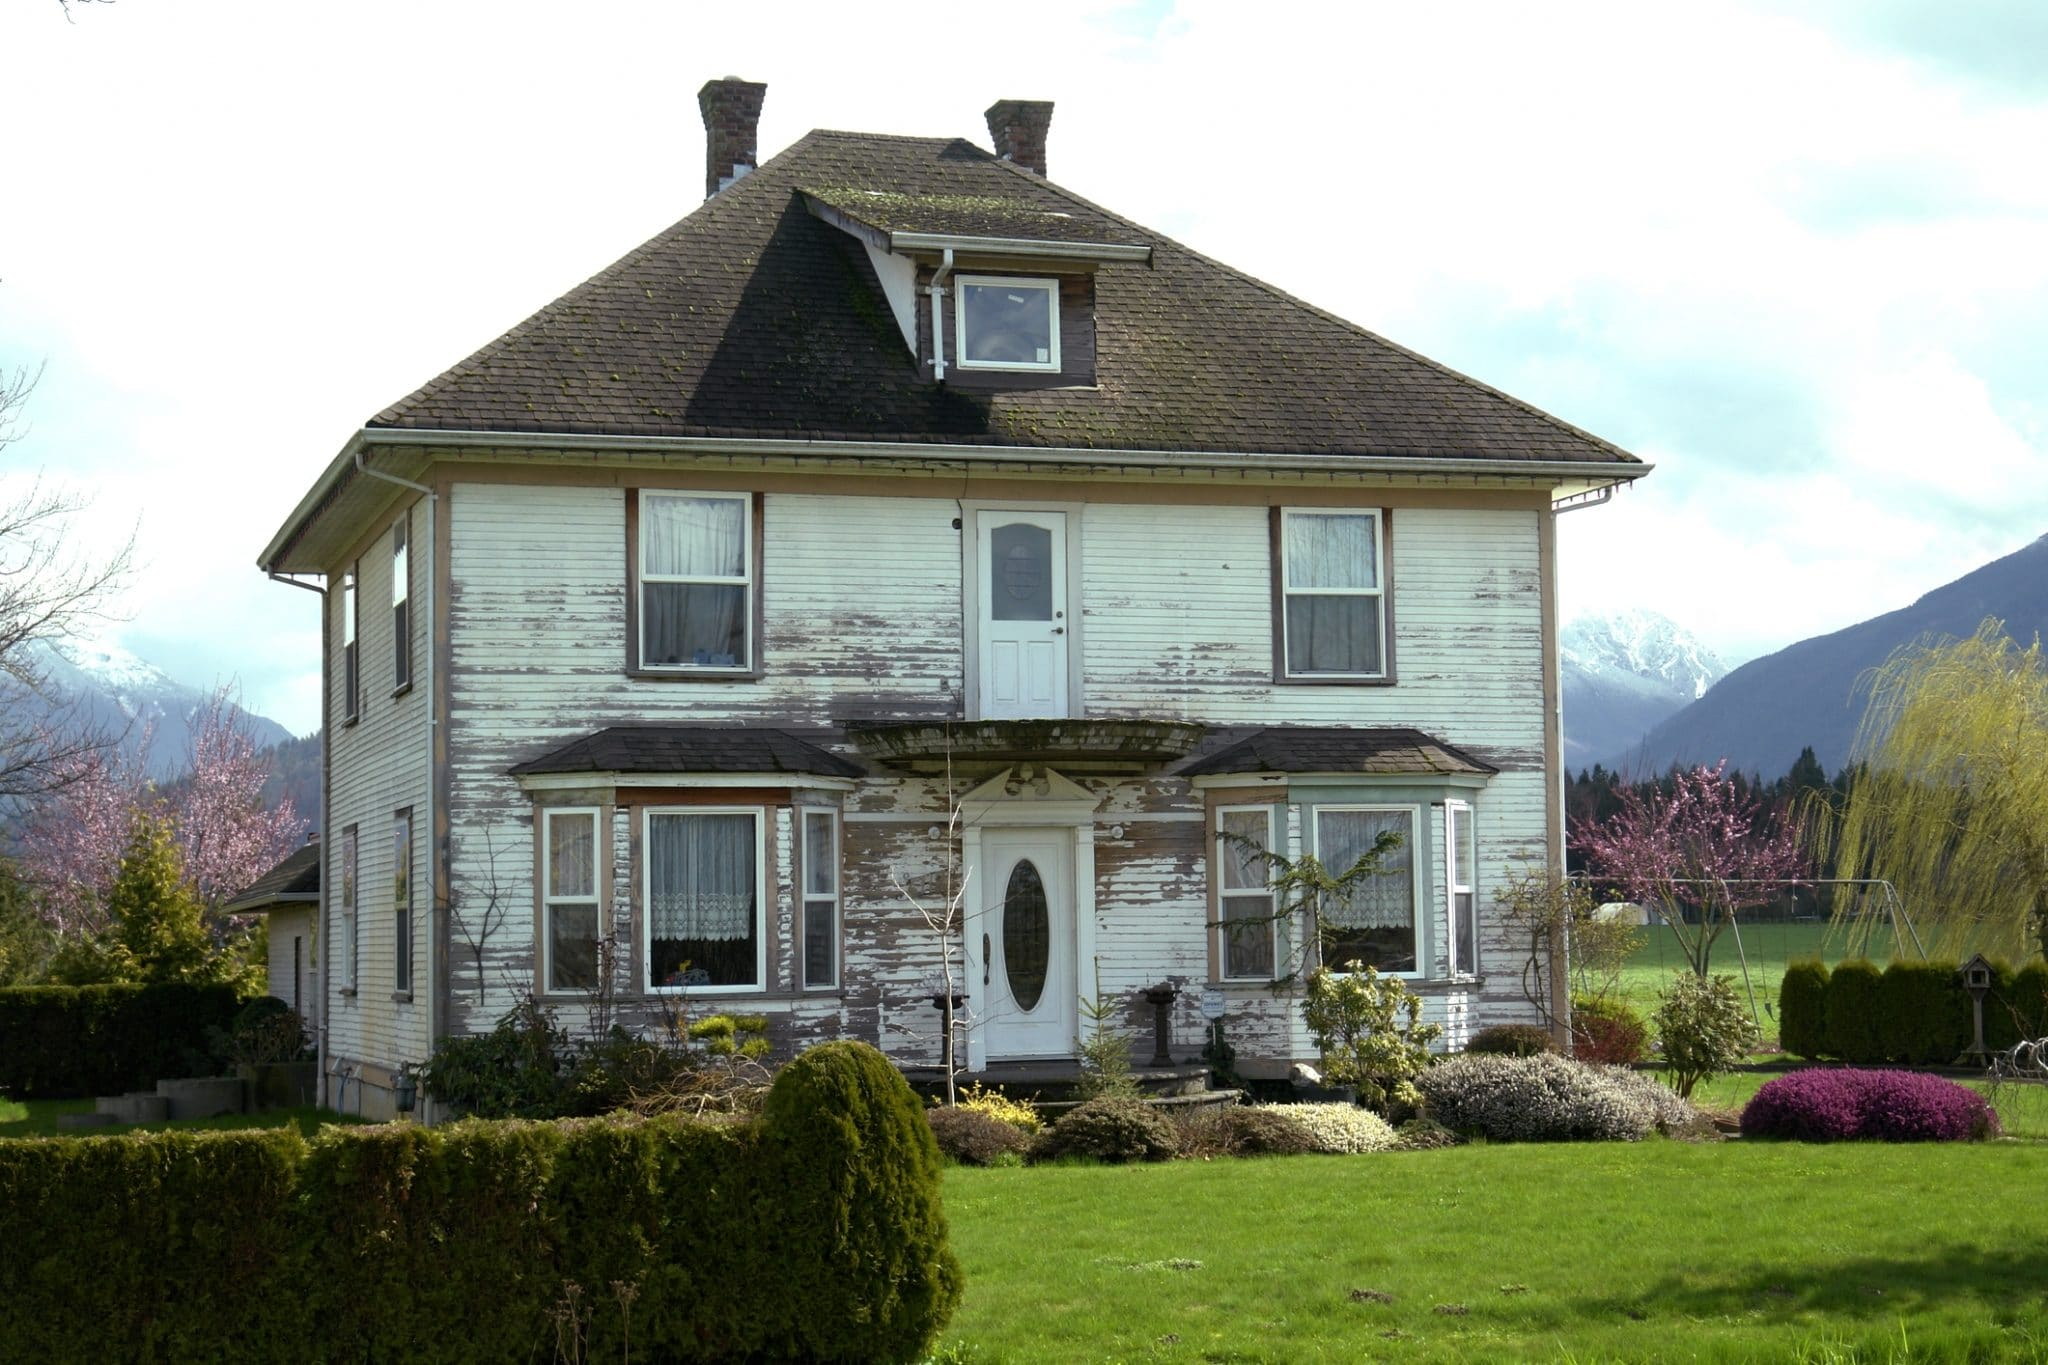 What Should You Know About Selling a Fixer-Upper Quickly